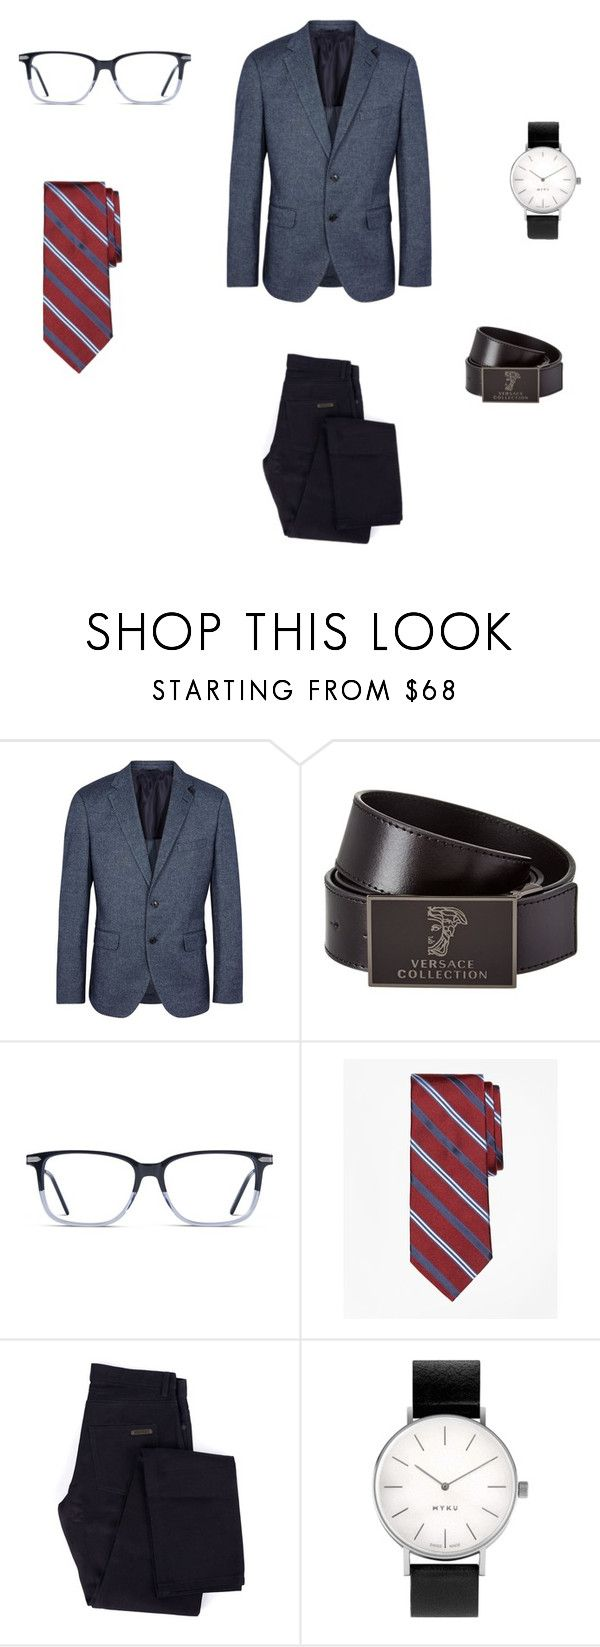 """man fashions"" by tereza17-novakova17 on Polyvore featuring BOSS Black, Versace, Brooks Brothers, Givenchy, Myku, men's fashion and menswear"